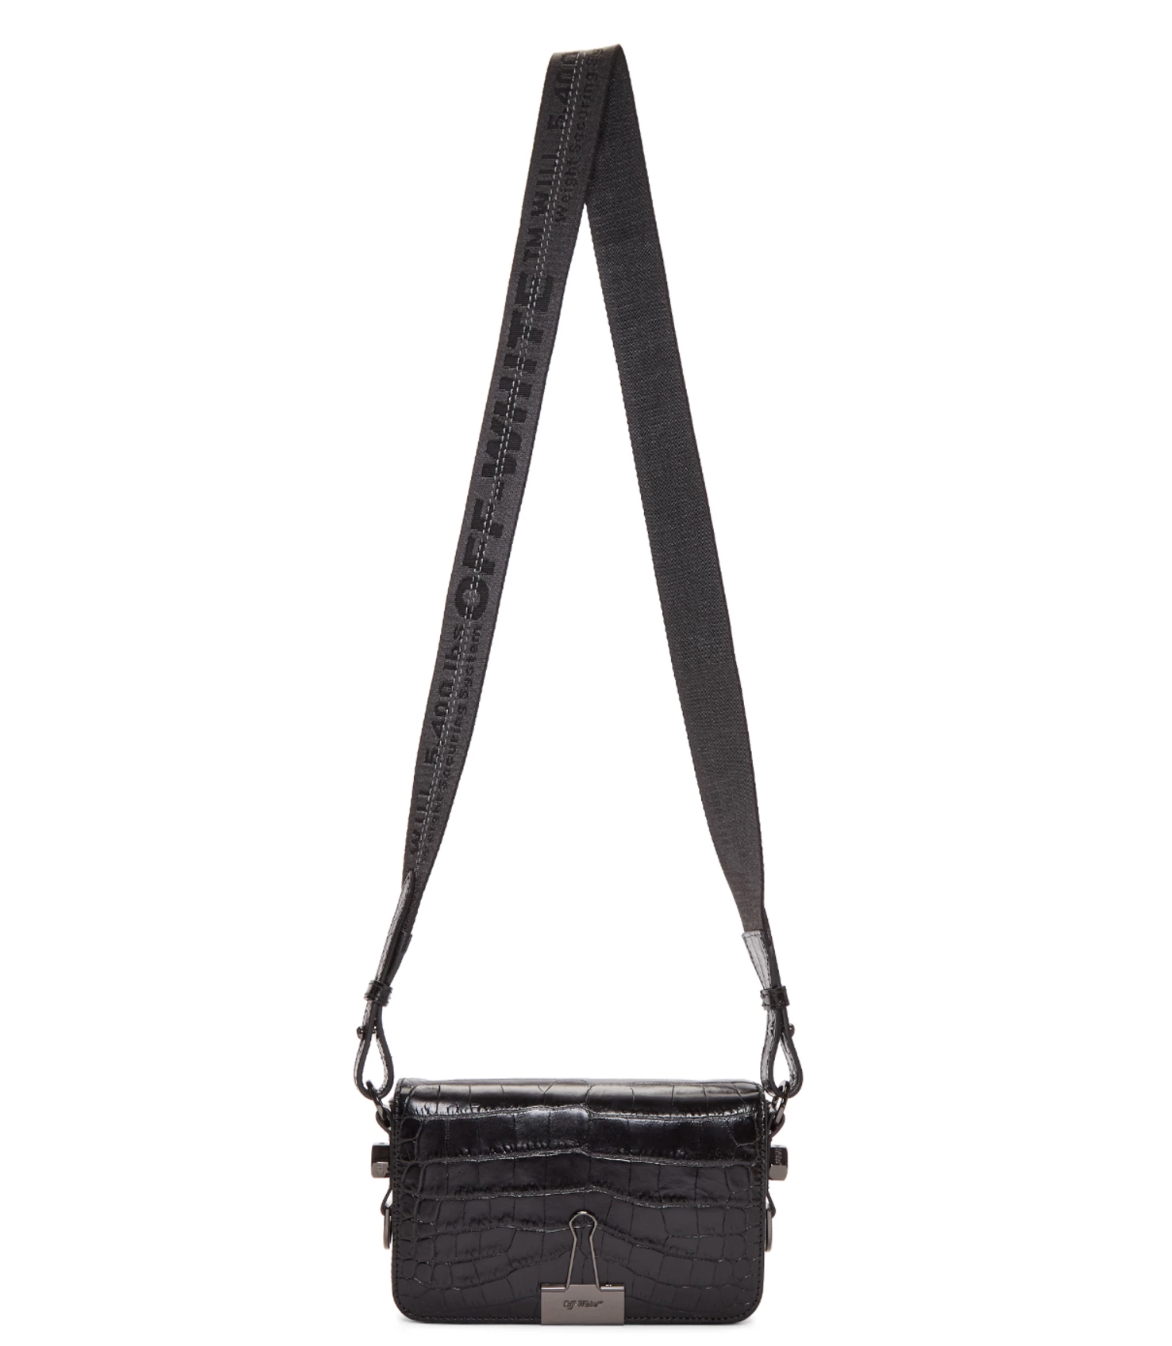 Off-White Croc Mini Flap Bag - 765€